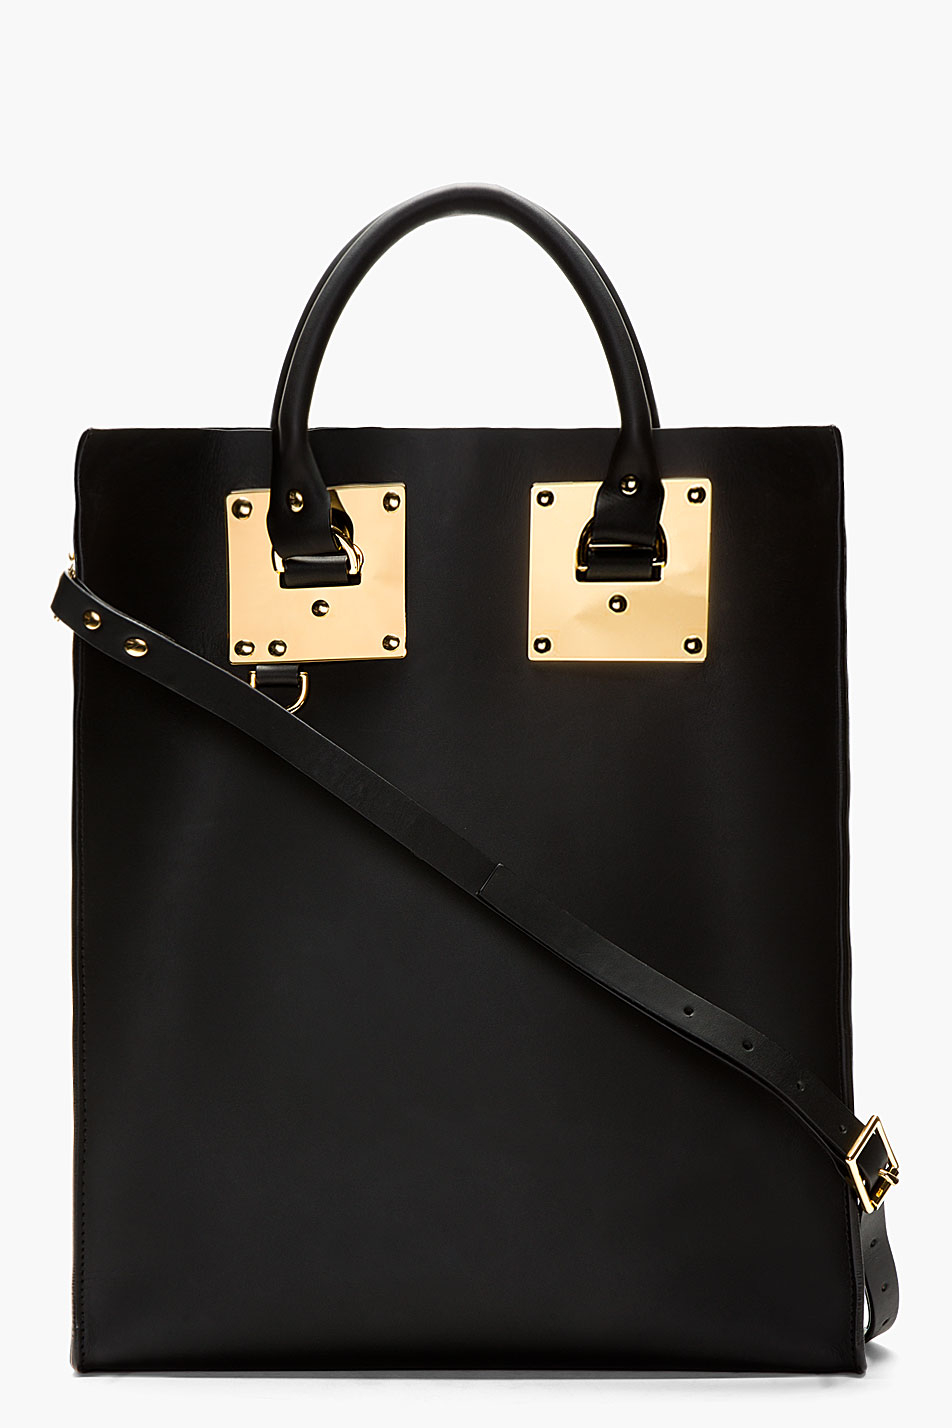 Sophie hulme Black Leather and Gold Tote Bag in Black | Lyst